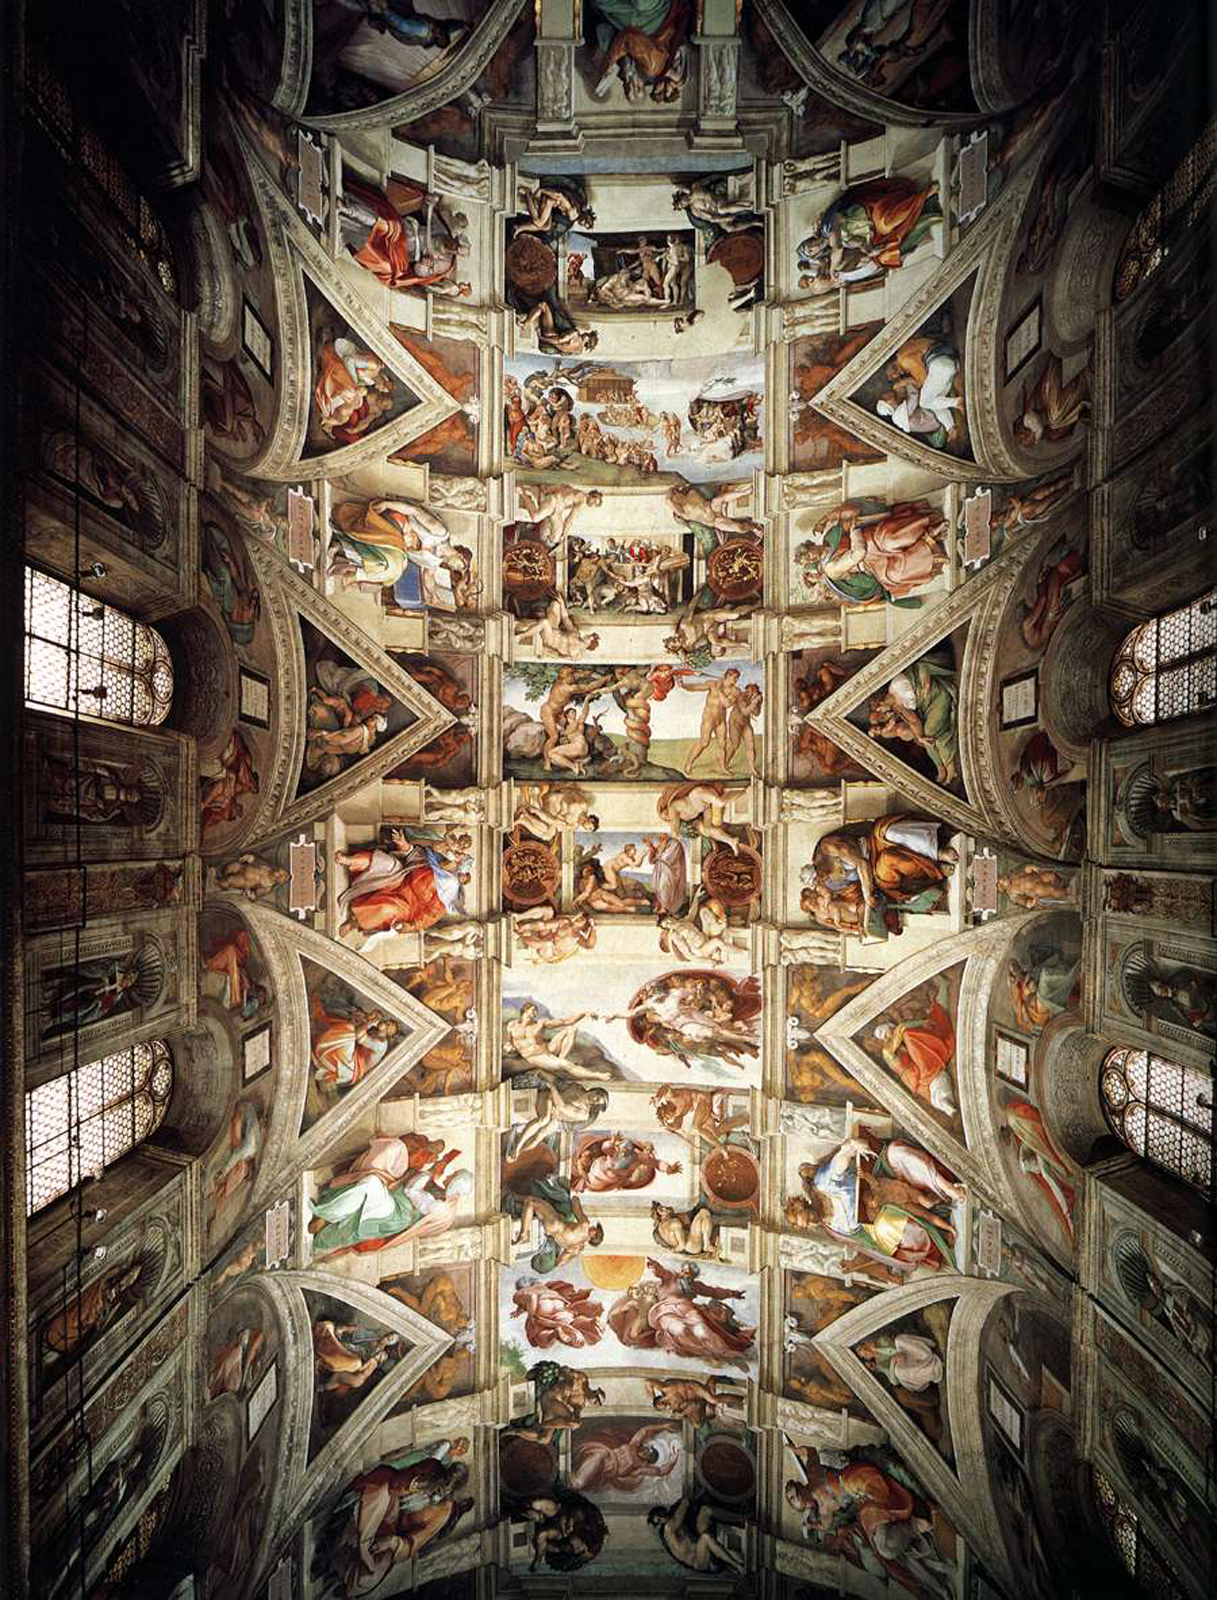 A look into life and artwork of michelangelo buonarroti